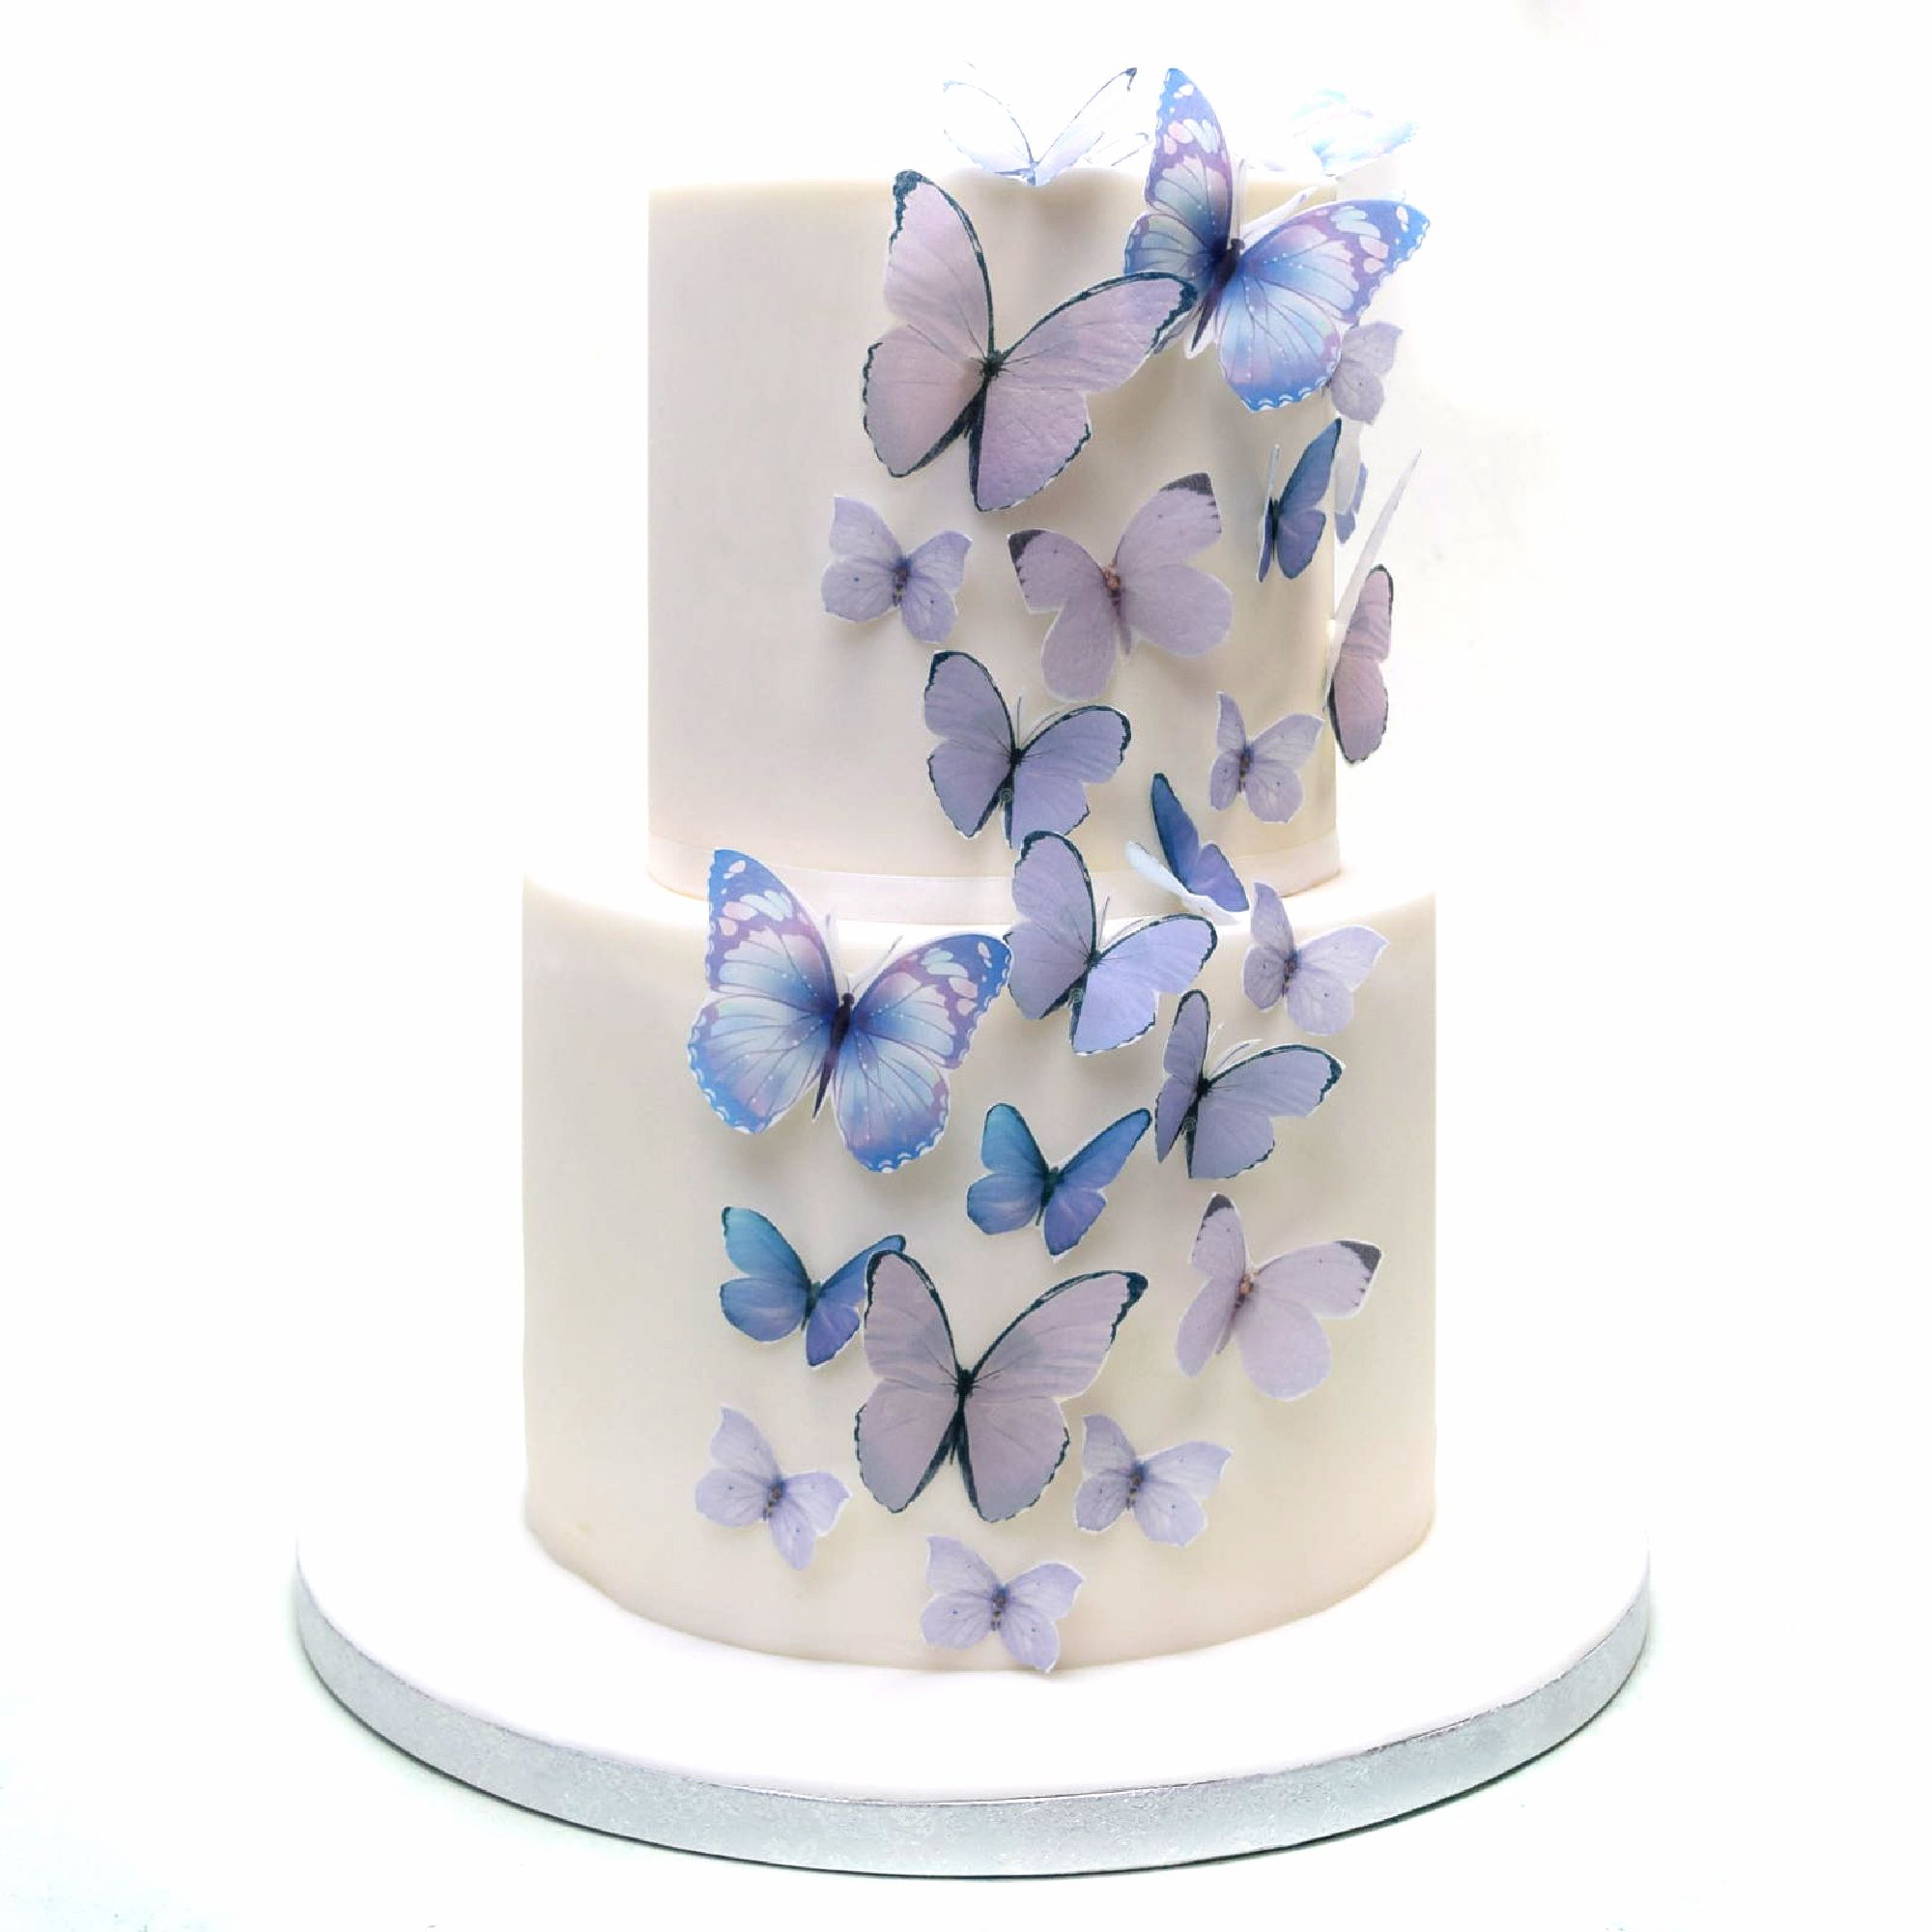 WHAT ARE THE MOST SIGNIFICANT BUTTERFLY BIRTHDAY CAKES IN DUBAI?